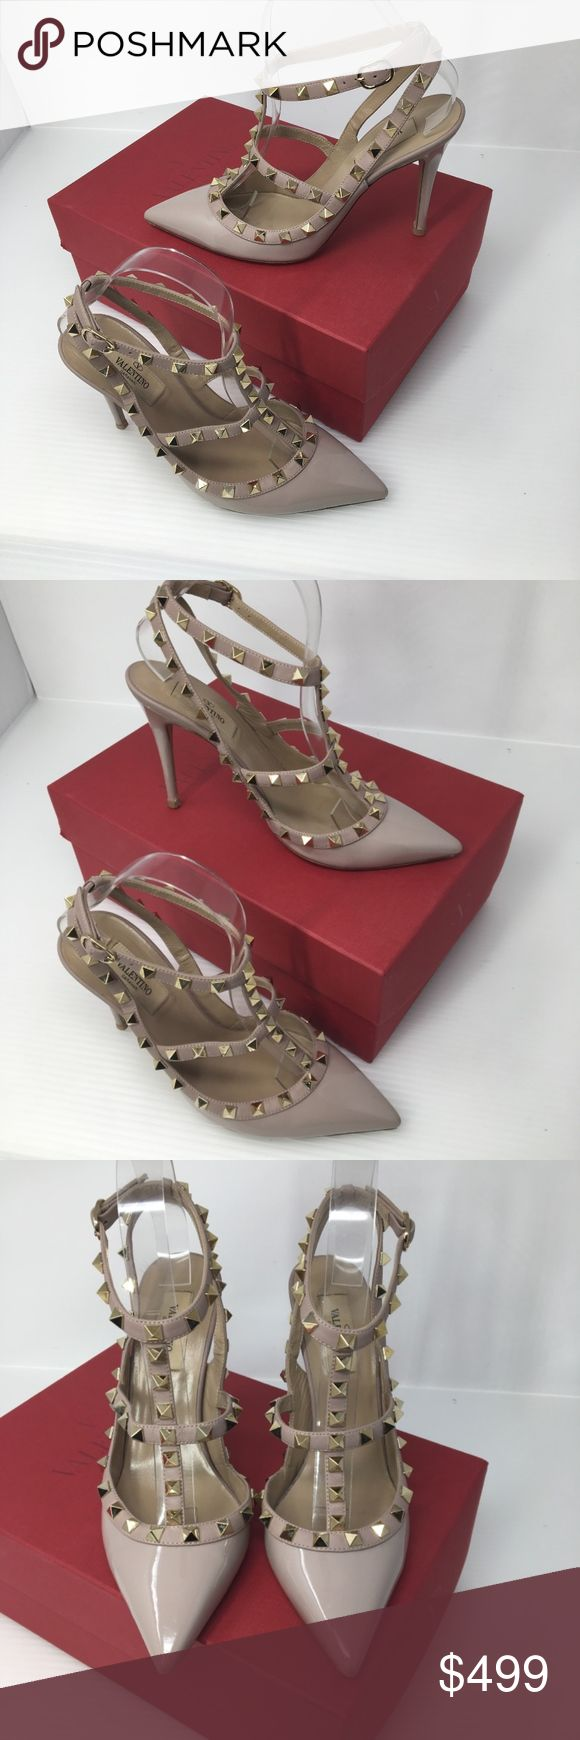 Valentino Nude Poudre Rockstud T Strap Pumps Beauties!!! I had the soles and heel points reconditioned on these and they are ready to hit the town!!, Please zoom on all photos for condition detail. Sale will include the box shown and a dustbag. Size is 38. Valentino Shoes Heels